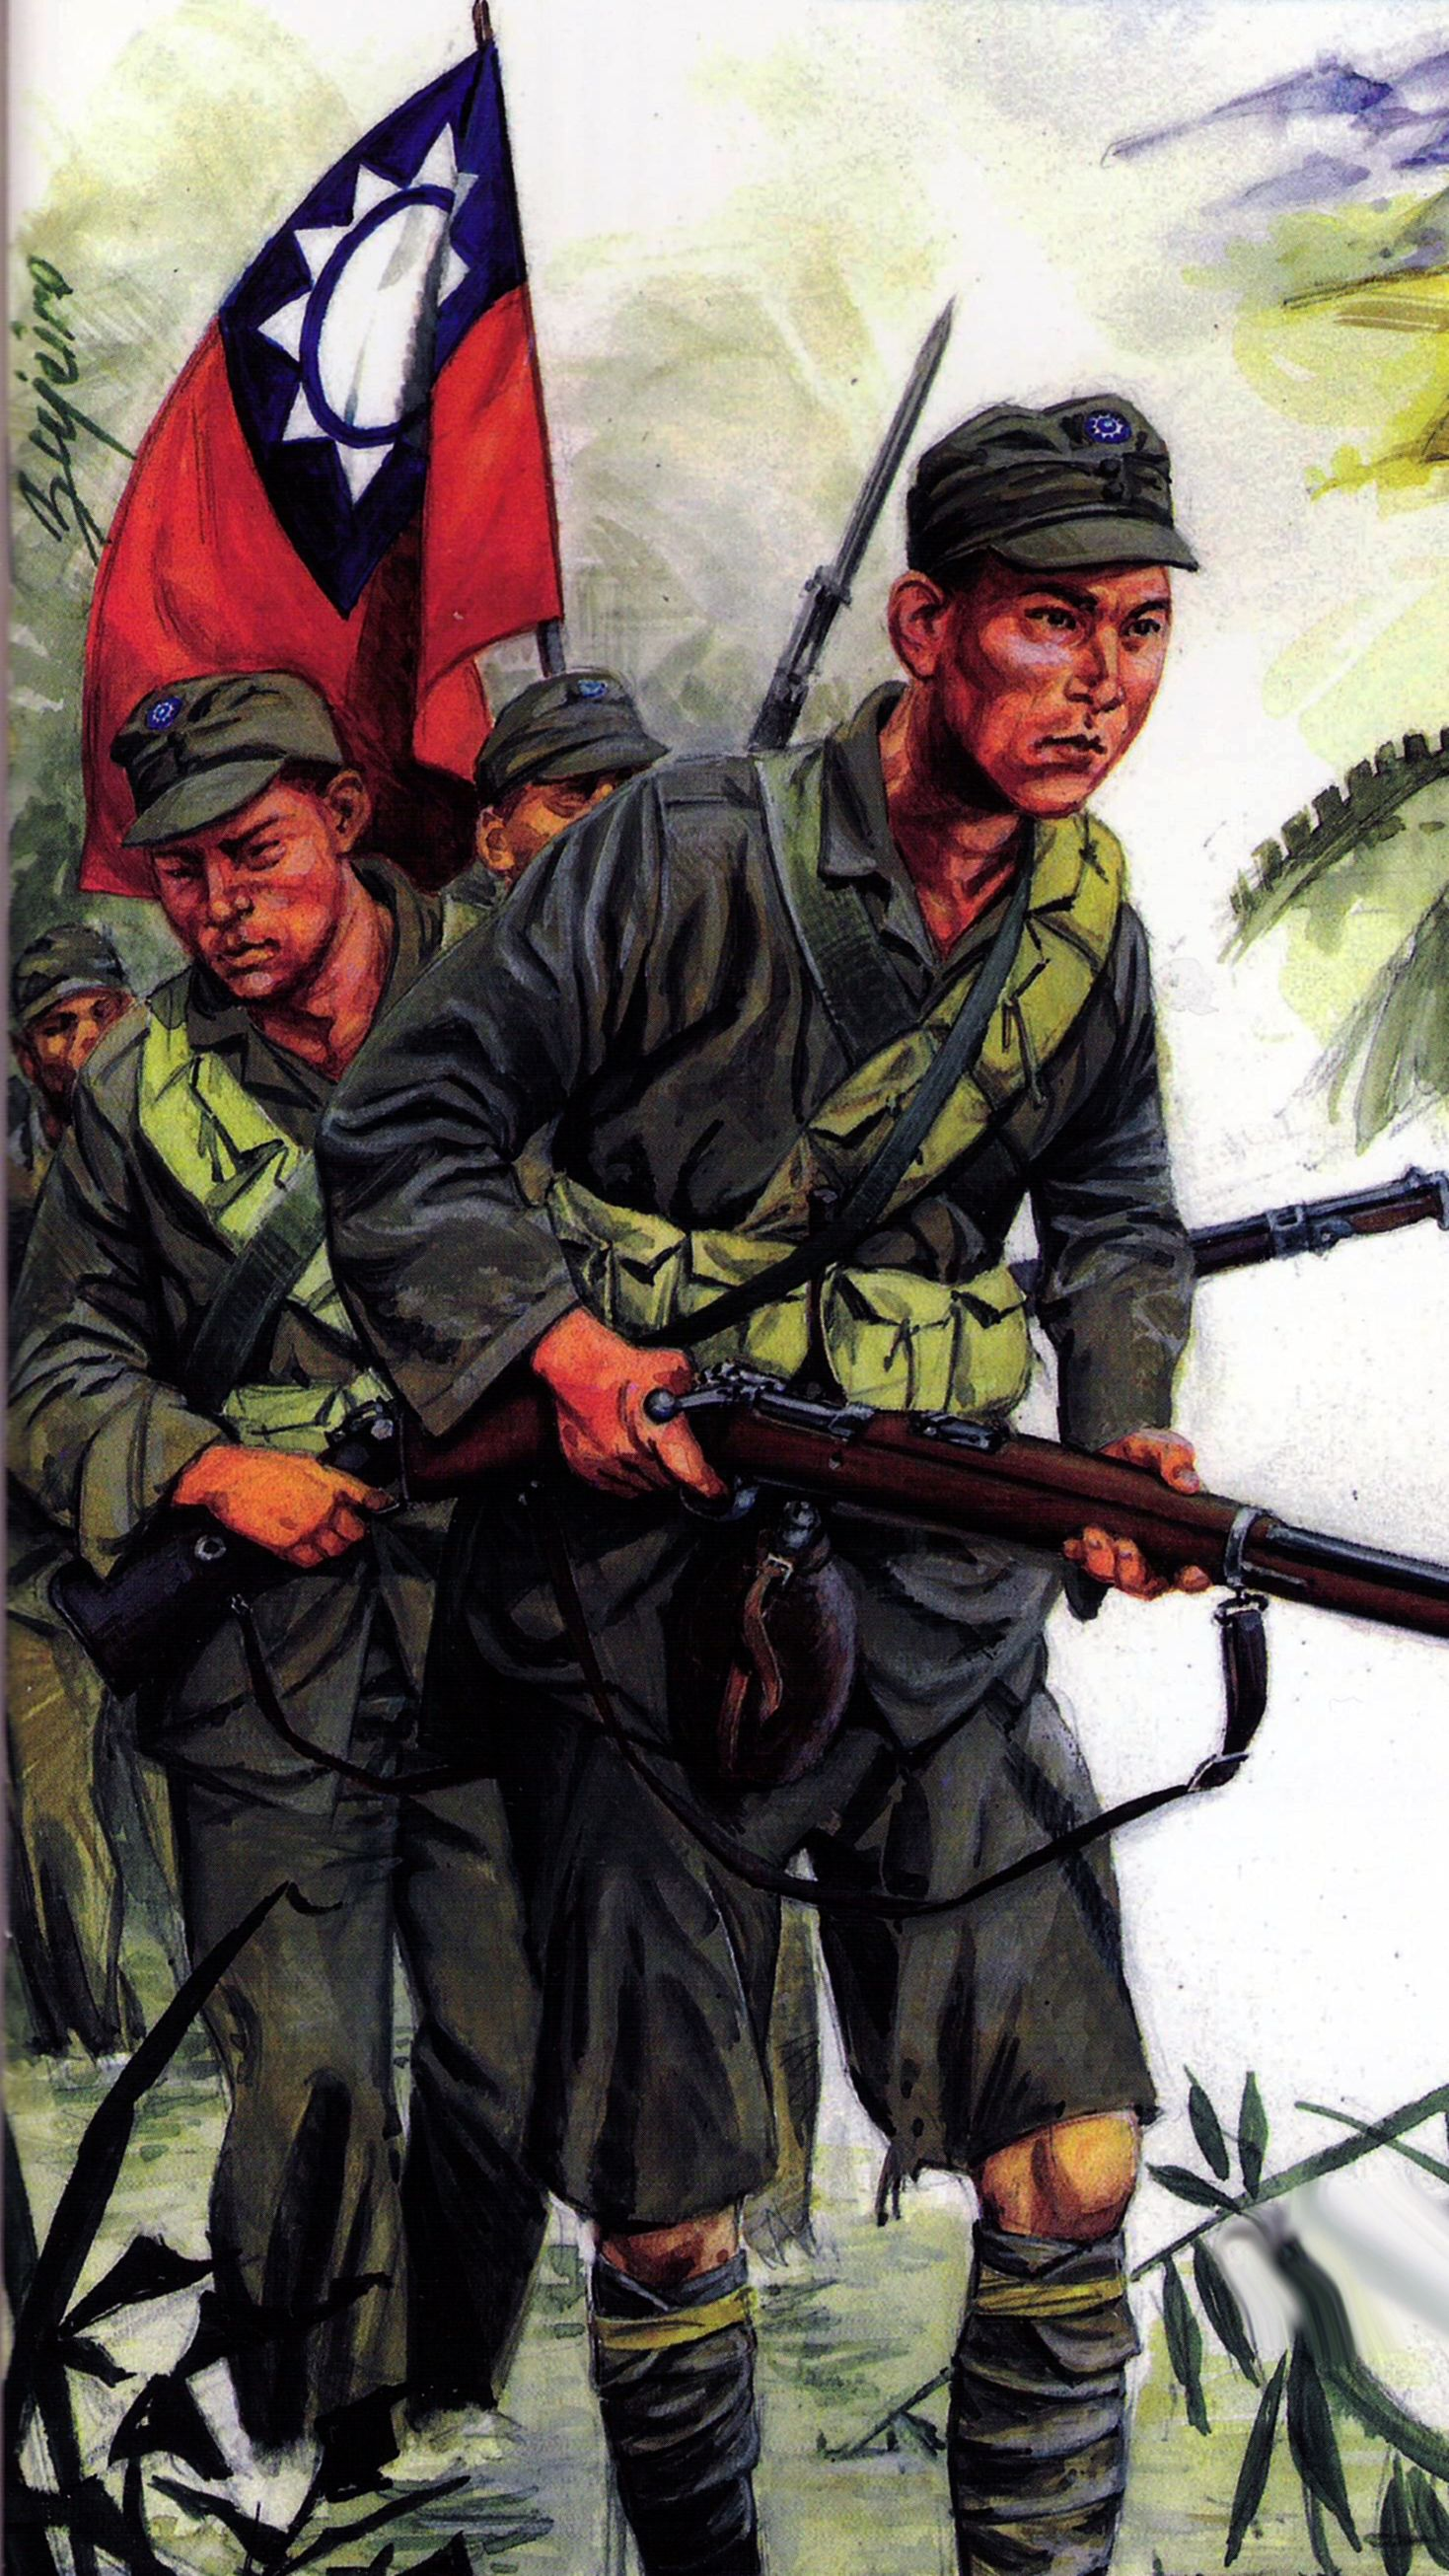 a history of chinese civil war In this episode we examine the start of the chinese civil war between the nationalists and the chinese communist party we also examine the rise of the two faction leaders mao zedong and chiang kai-shek.